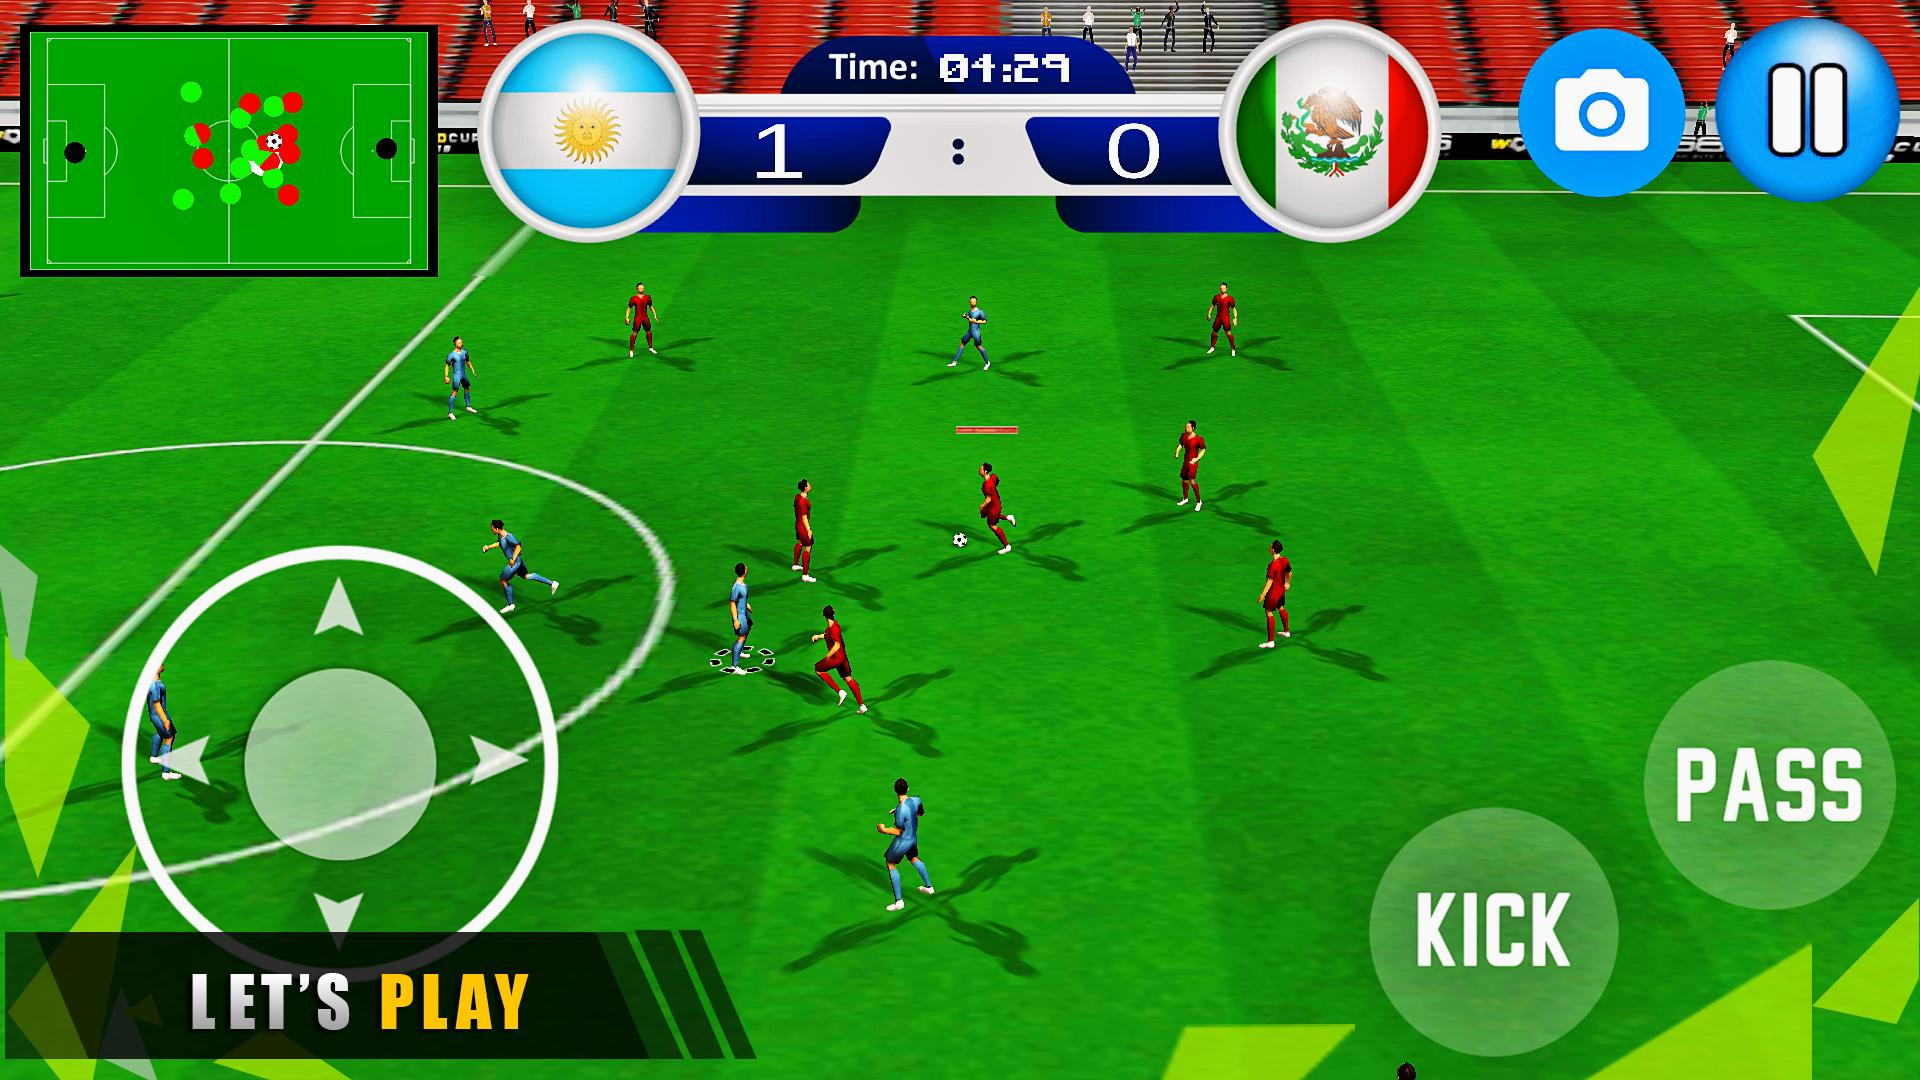 Who Won The World Cup 2020 Soccer.World Cup 2020 Soccer Games Real Football Games For